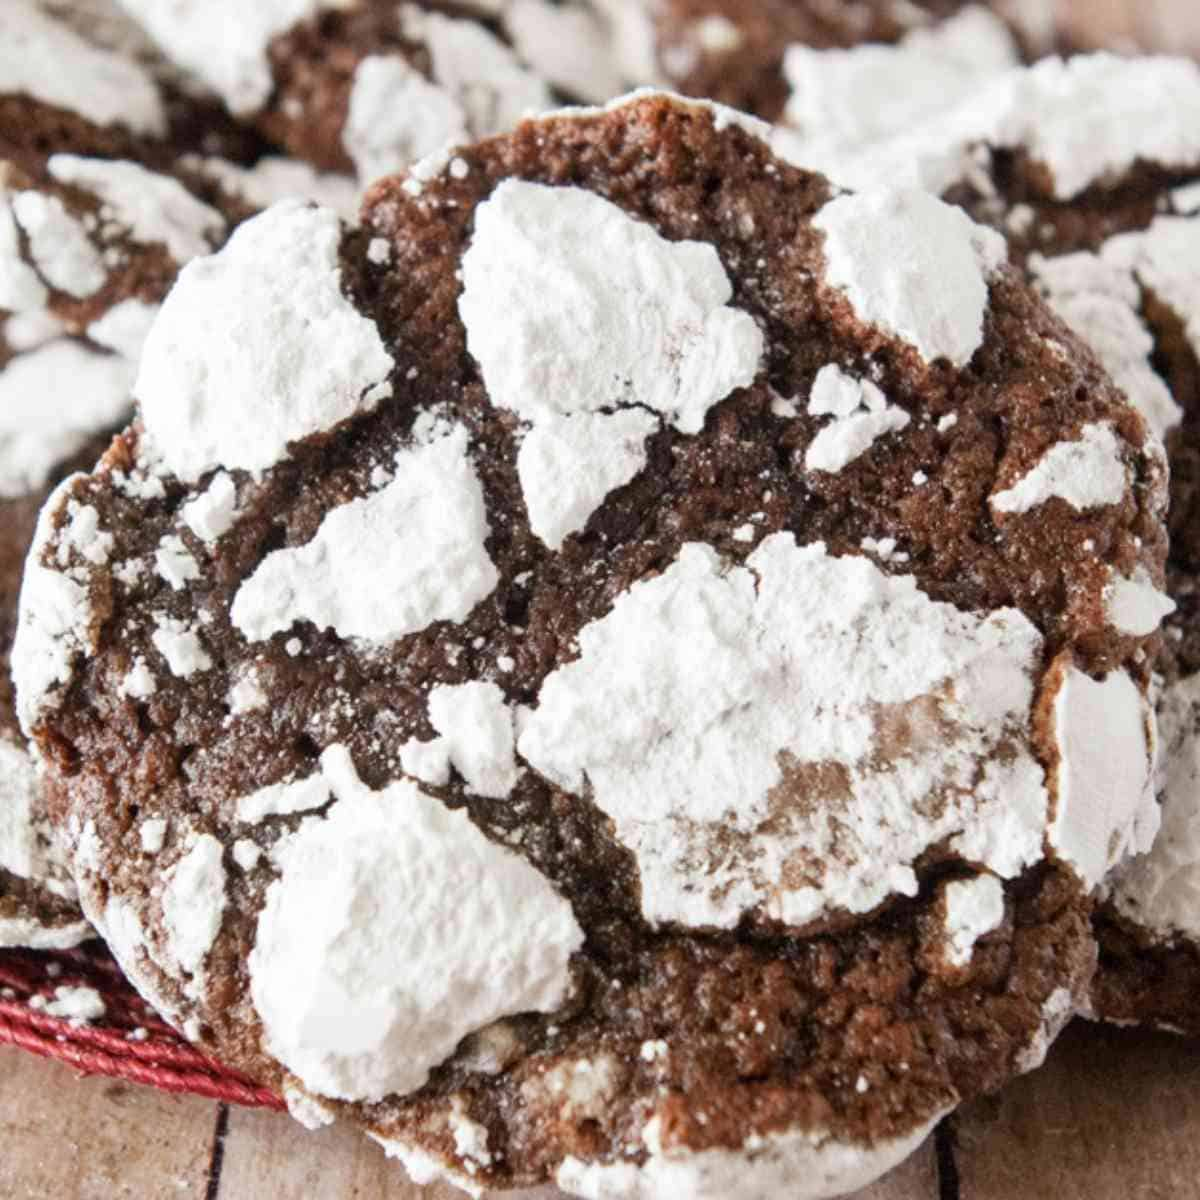 Chocolate crinkle or crackle cookie rolled with powdered sugar.